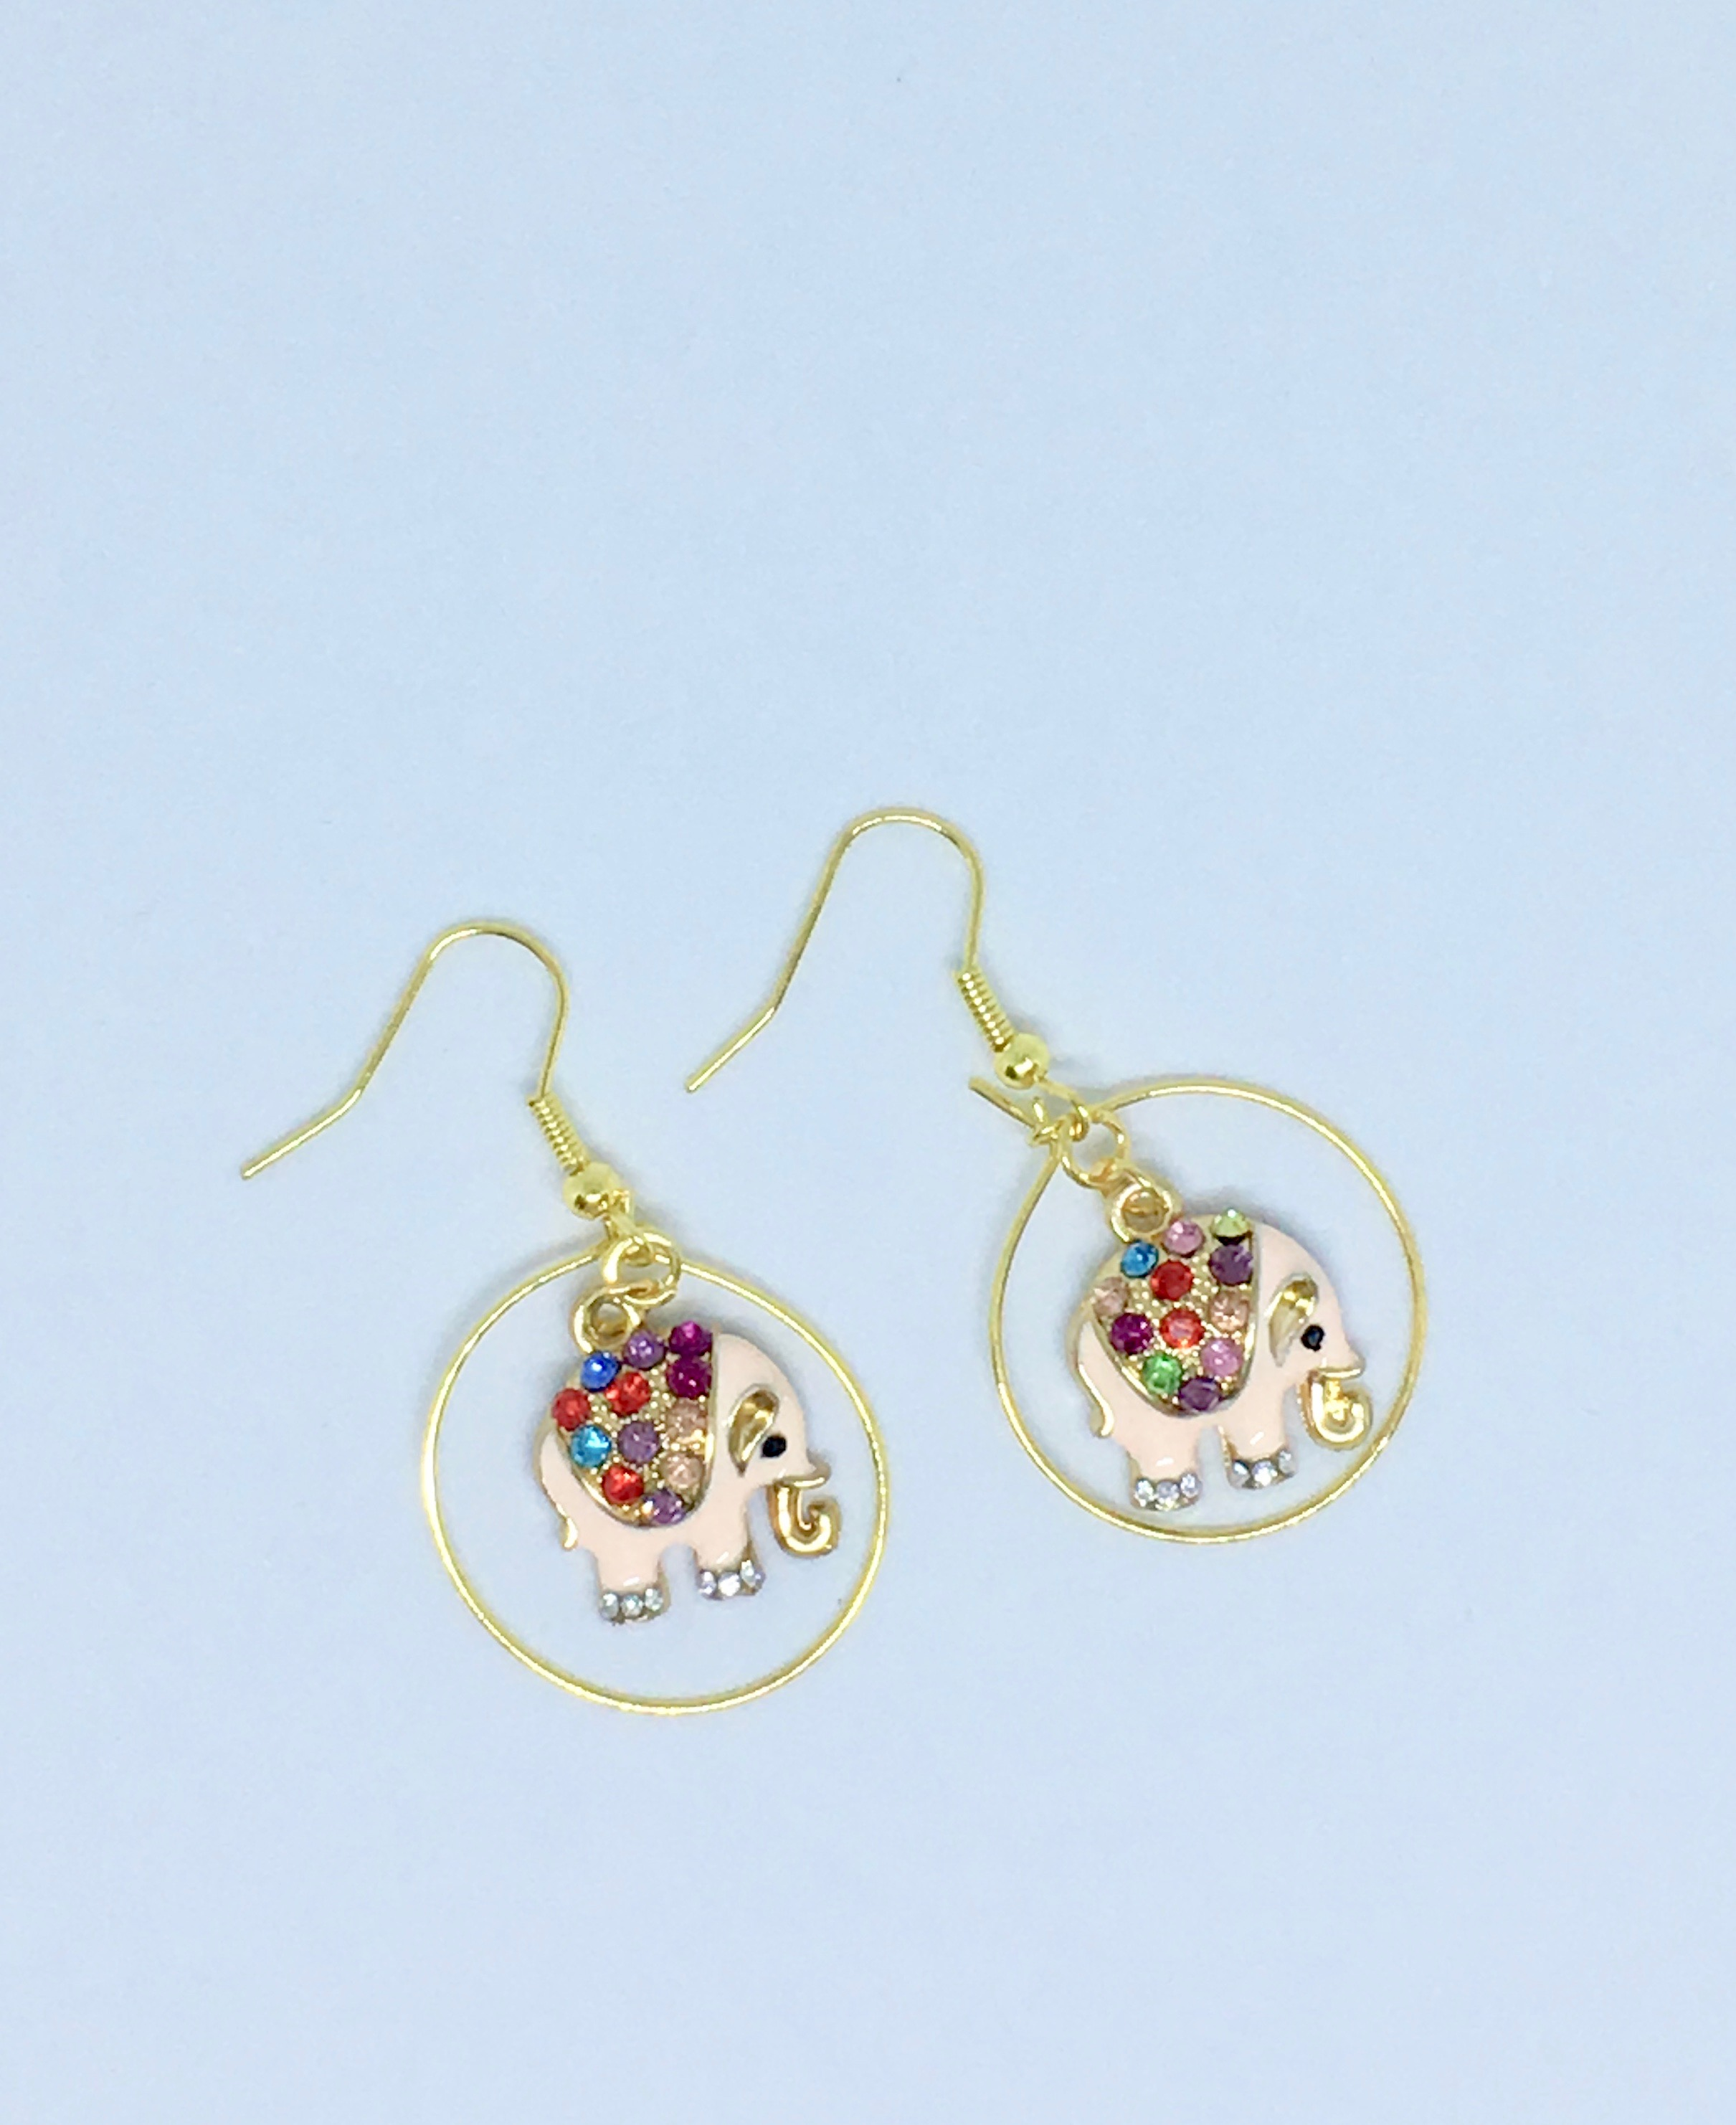 earrings miss baby apple products hello elephant